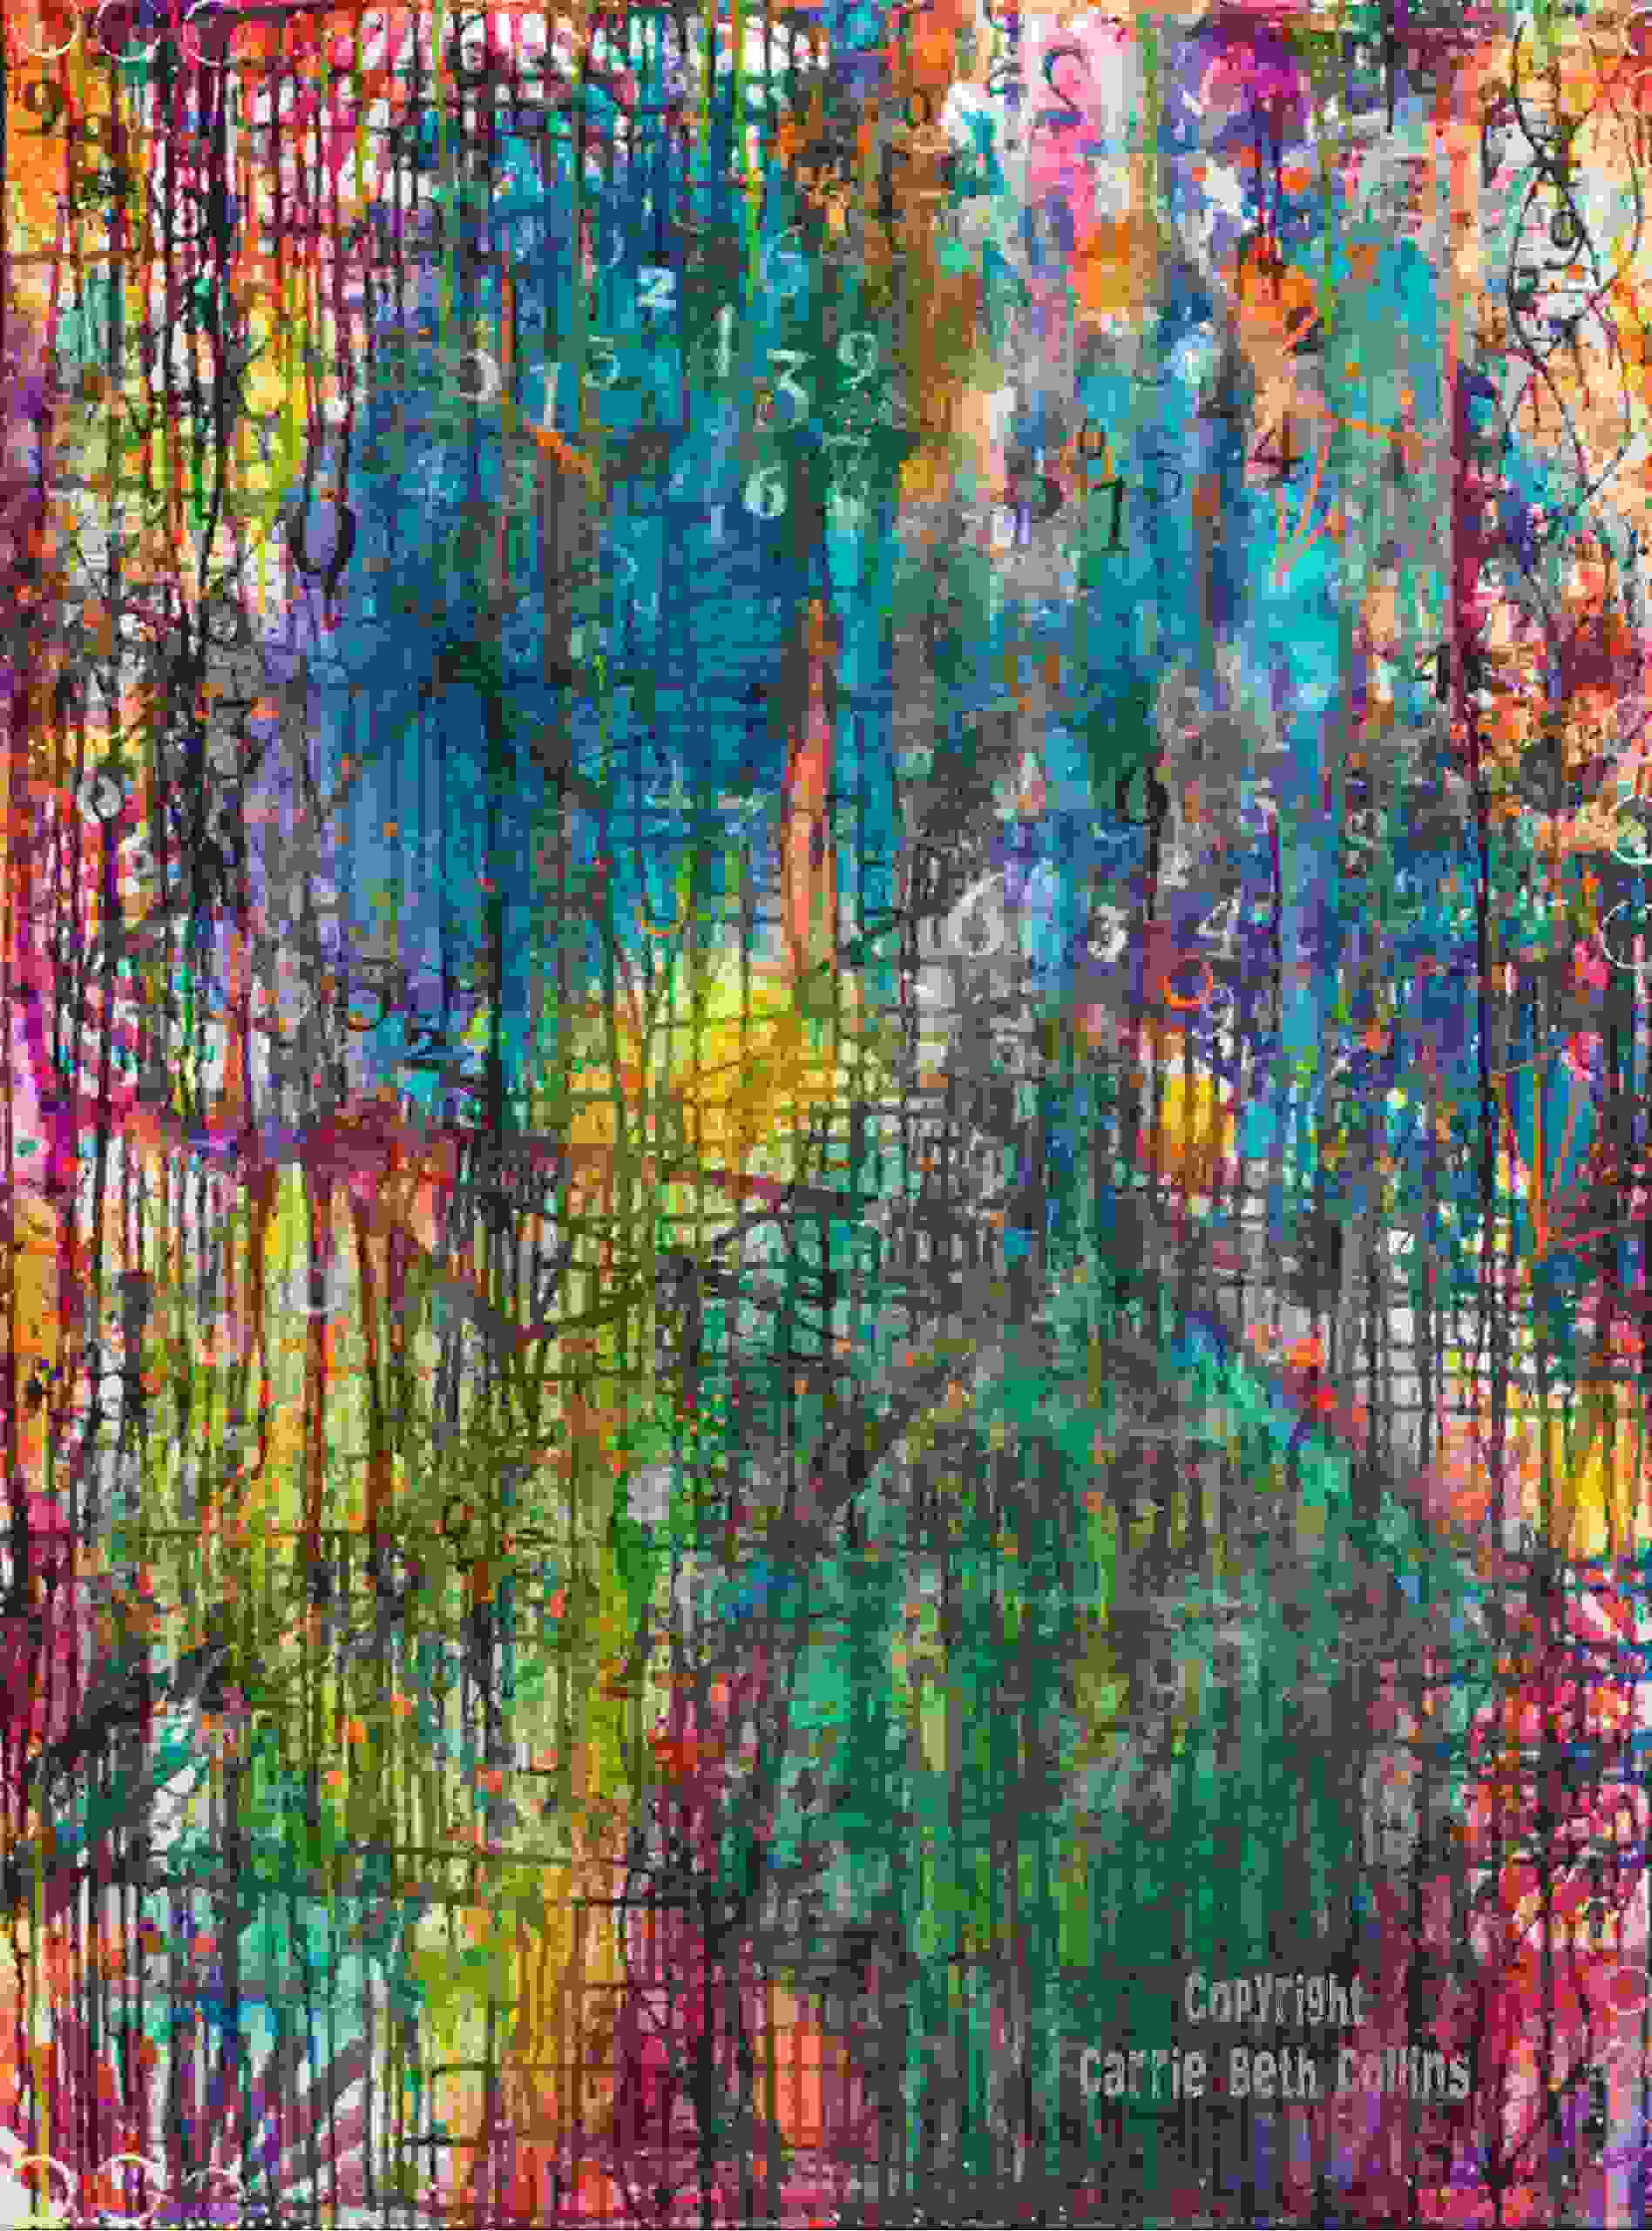 abstract, drippy, art, painting, Carrie Beth Collins, contemporary, rainbow, matrix, artist